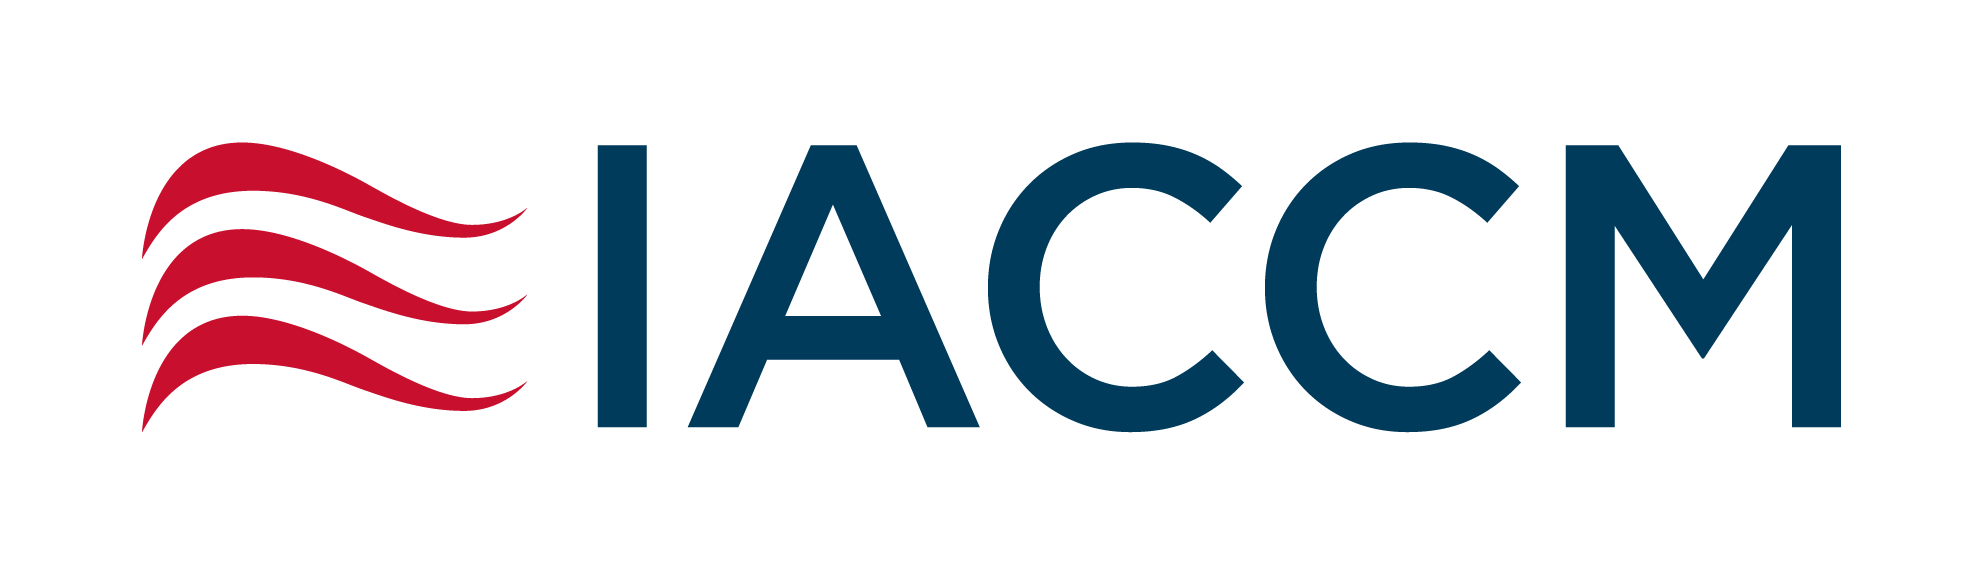 IACCM-logo-updated-2019